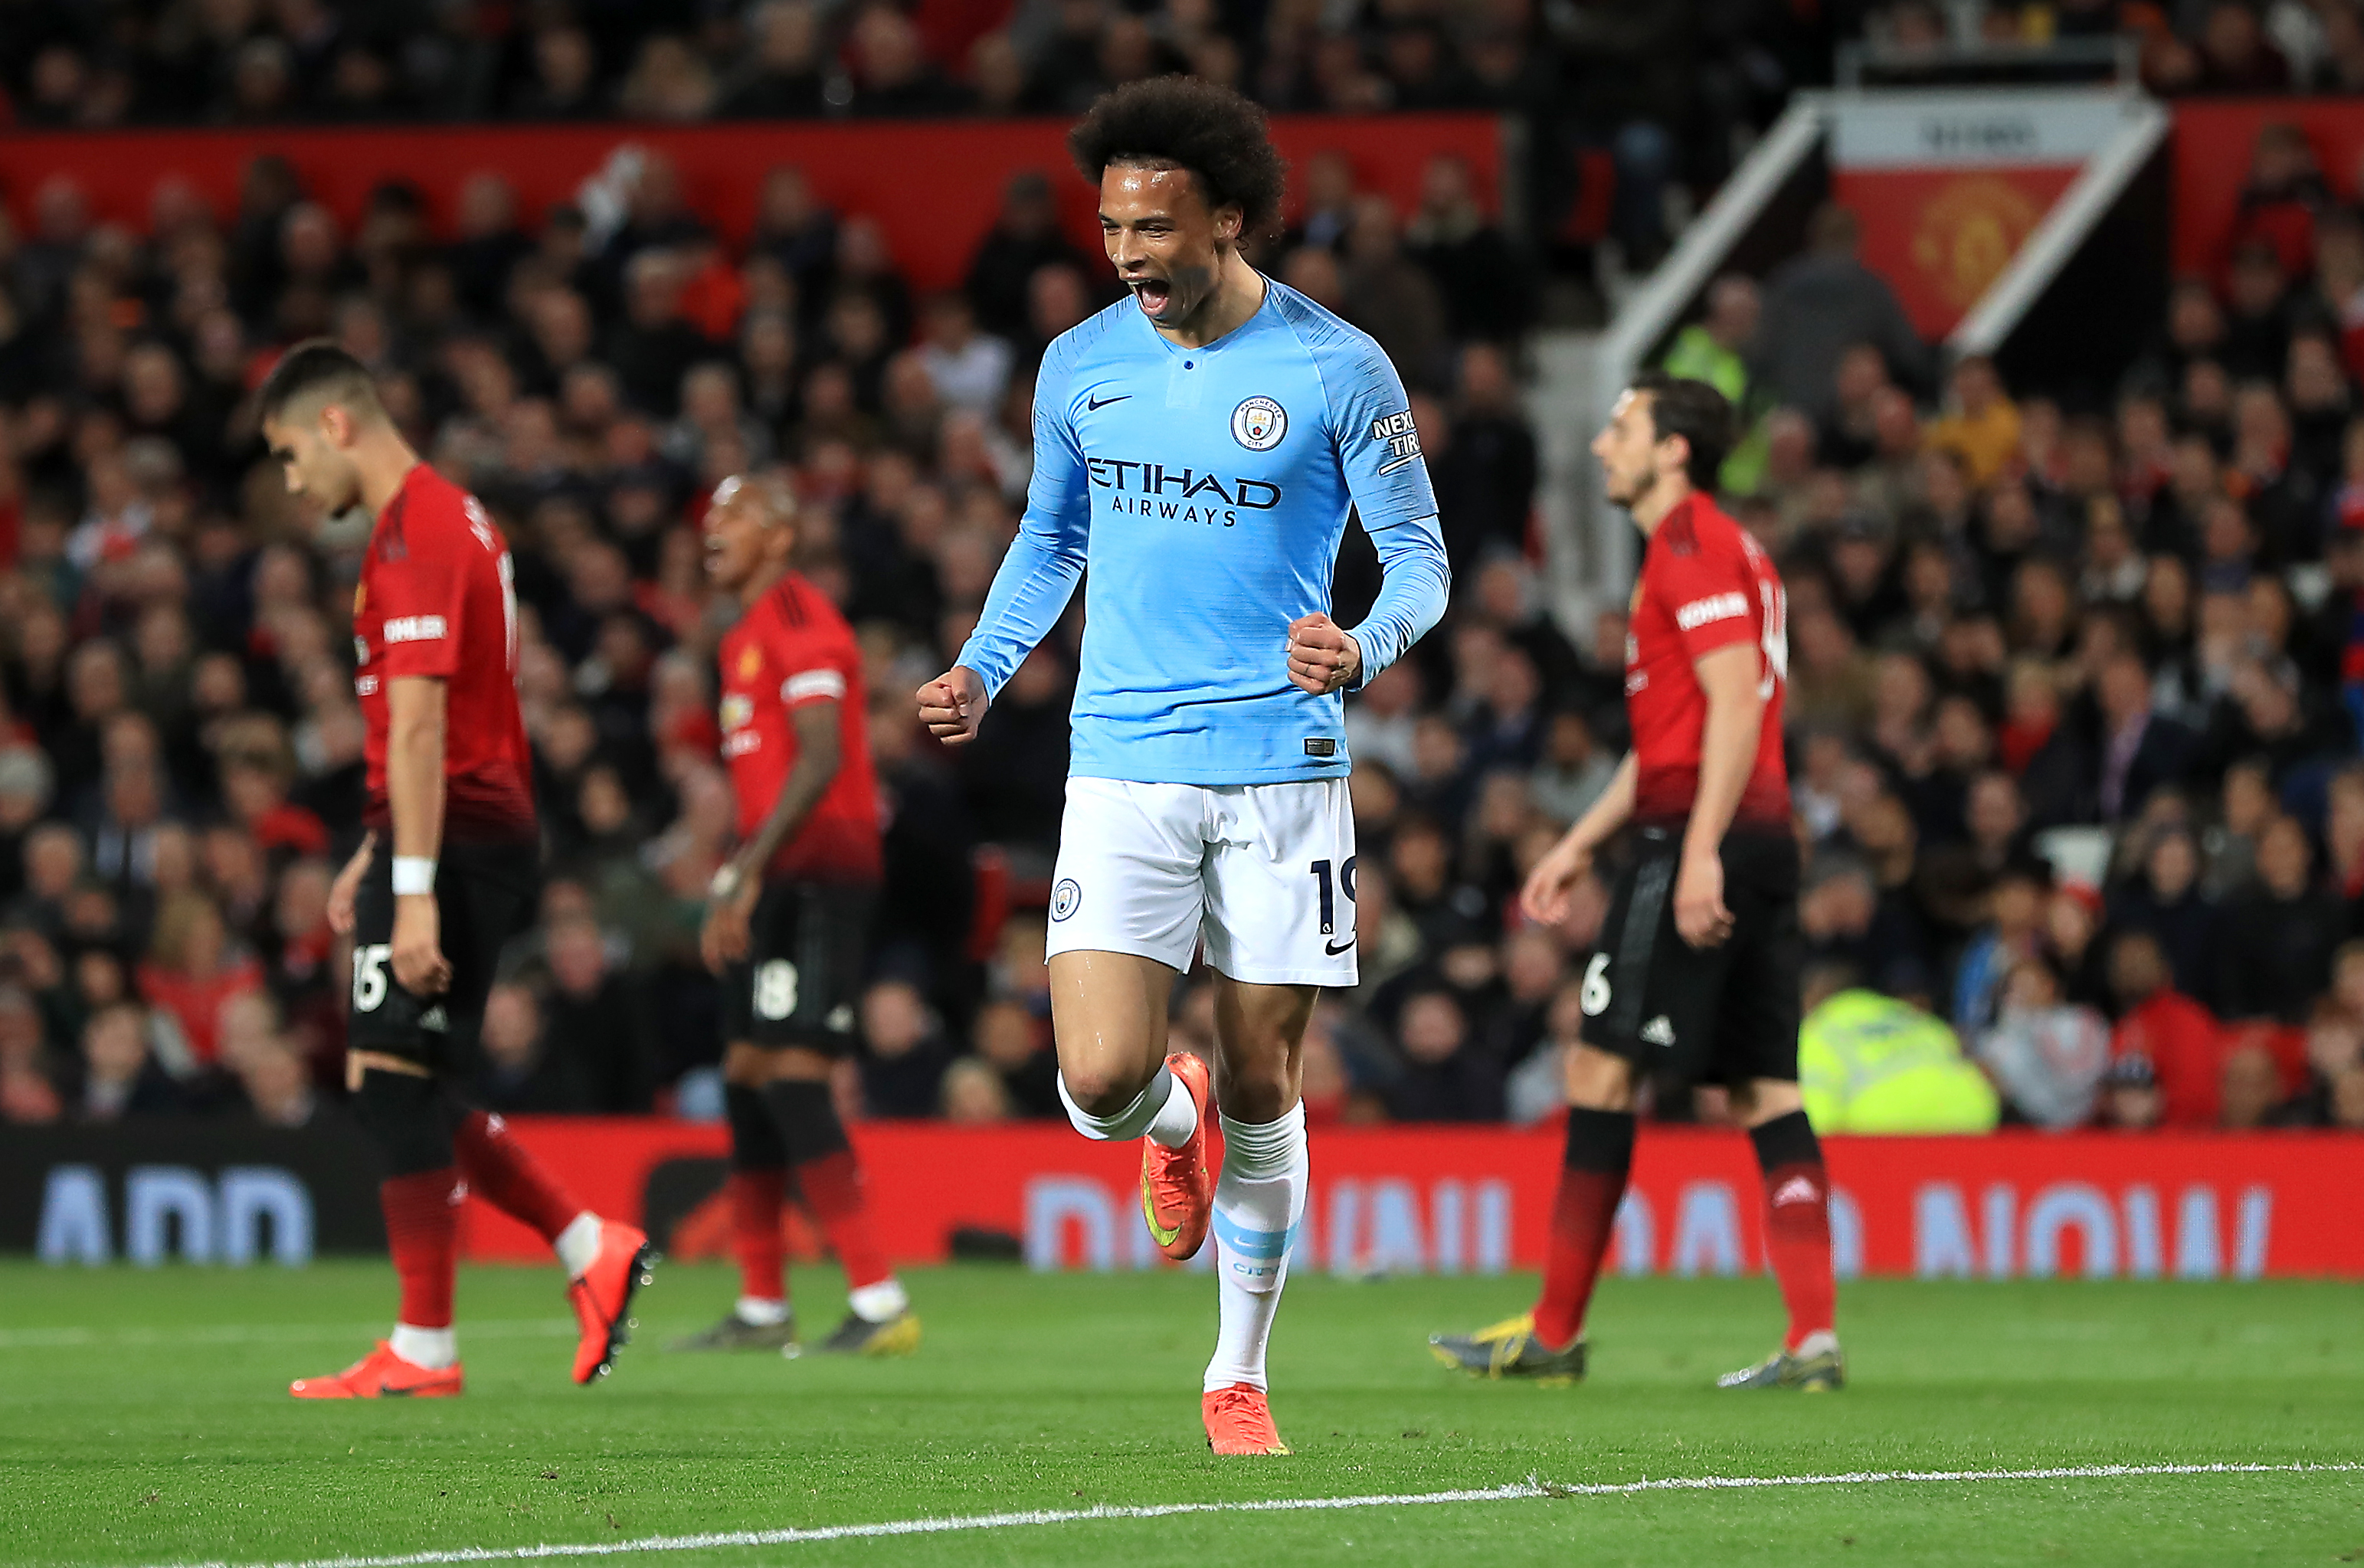 Sane joins conversation on whether or not Premier League season should be cancelled